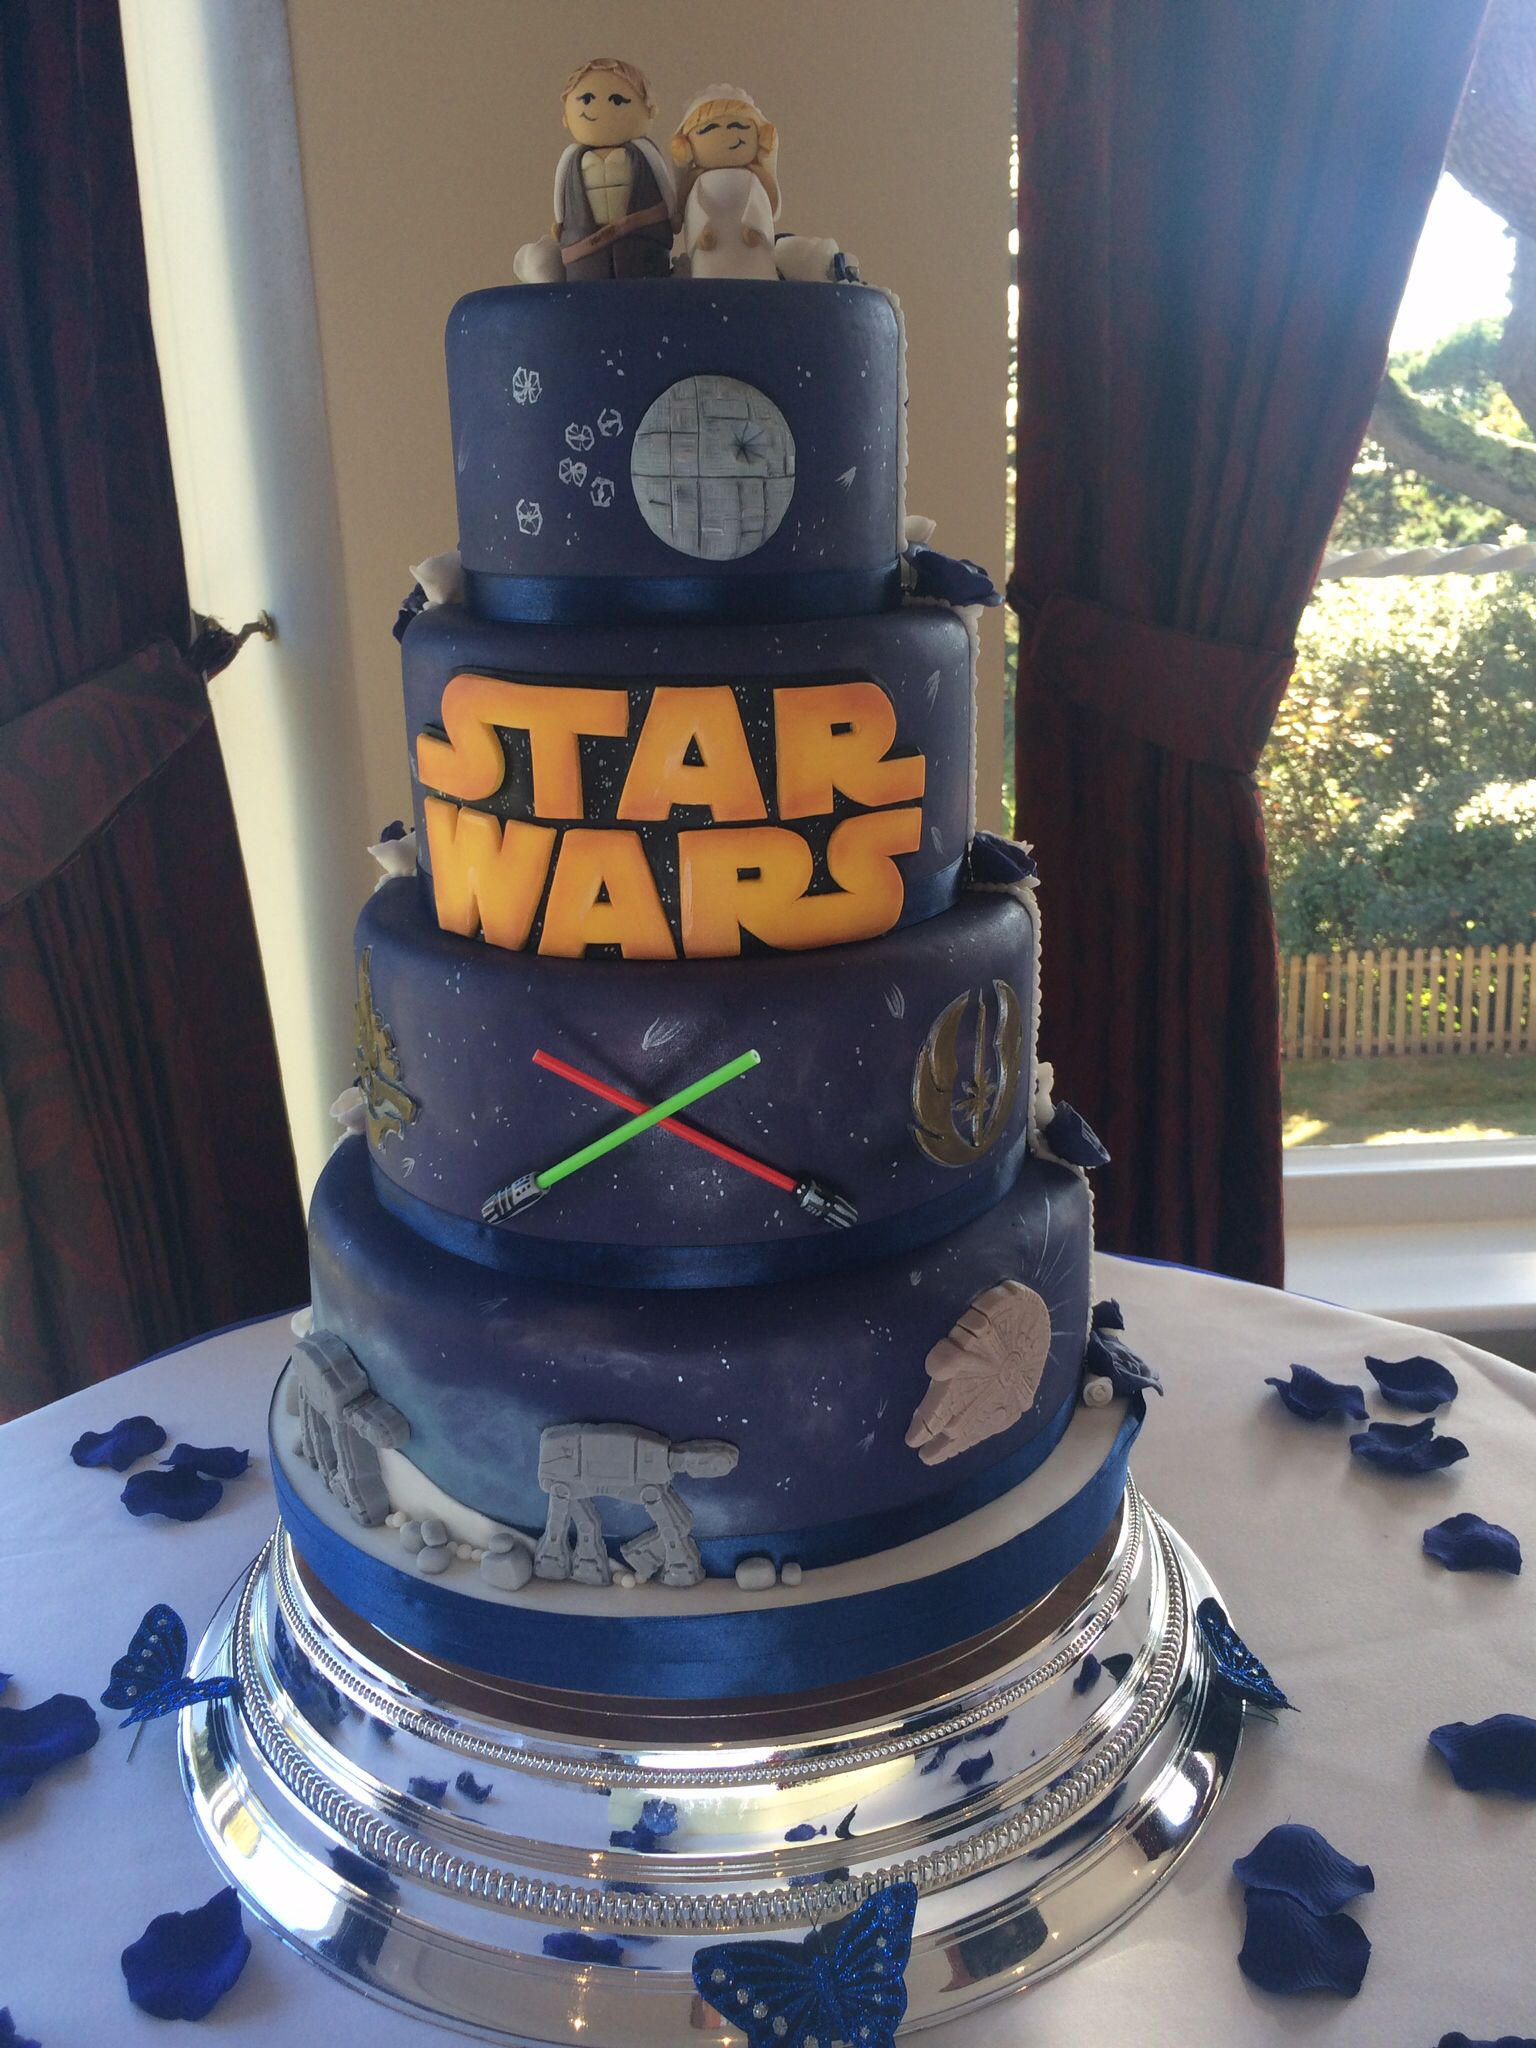 My Half Star Wars Half Traditional Wedding Cake Very Proud Of The Outcome Star Wars Wedding Cake Star Wars Wedding Theme Star Wars Wedding